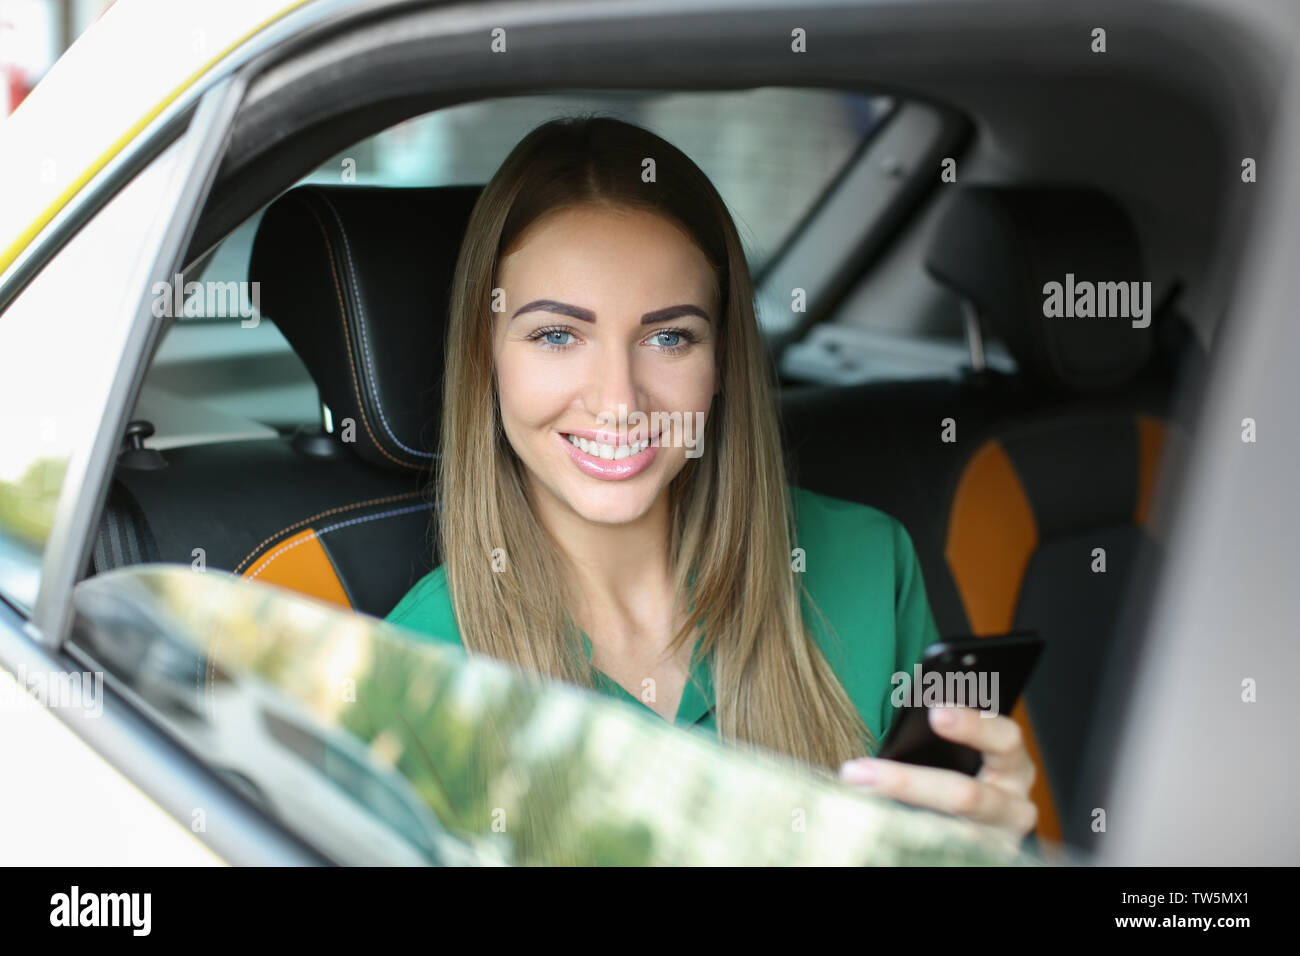 Beautiful woman with phone sitting in taxi - Stock Image